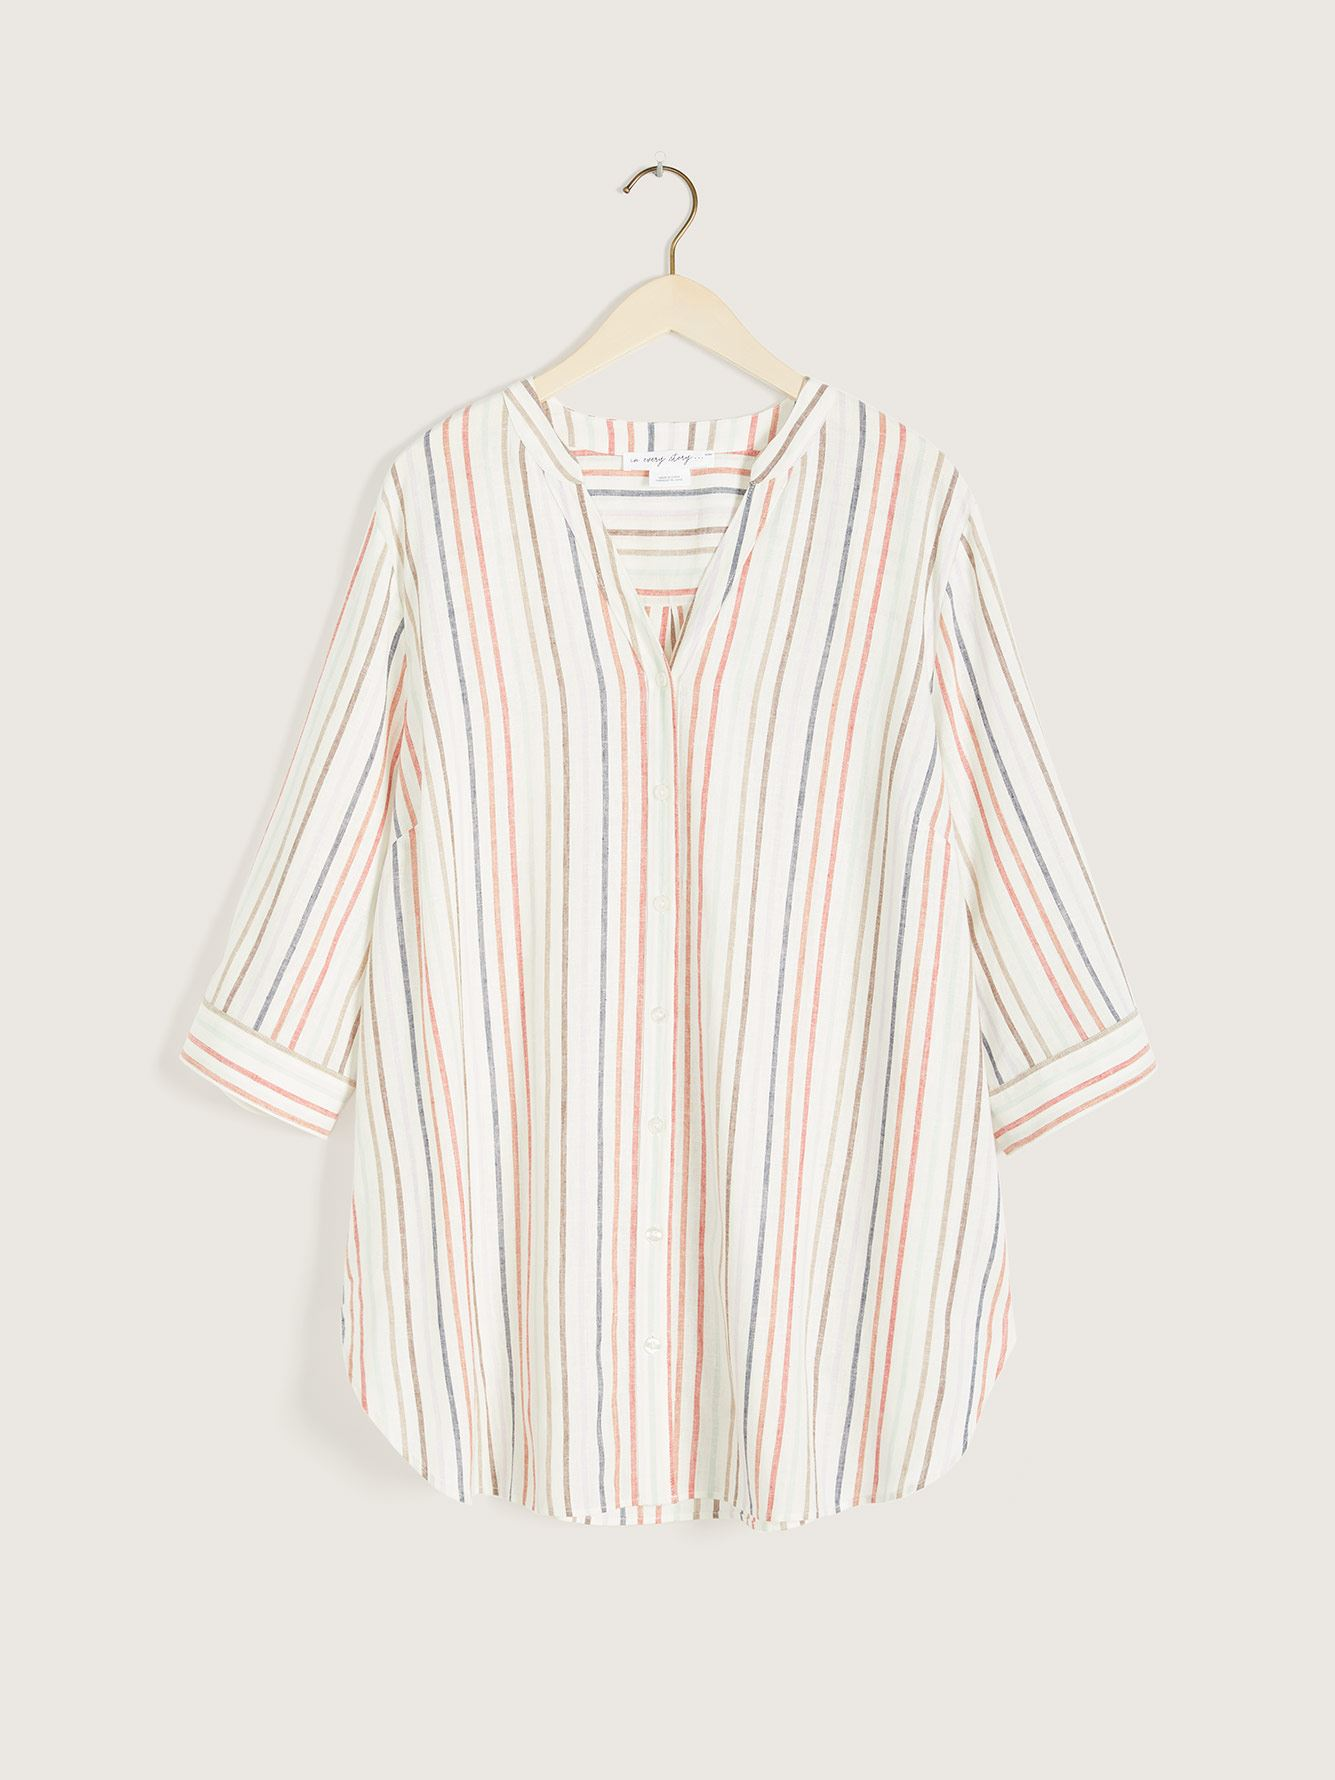 Striped Button-Down 3/4 Sleeve Blouse - In Every Story 6